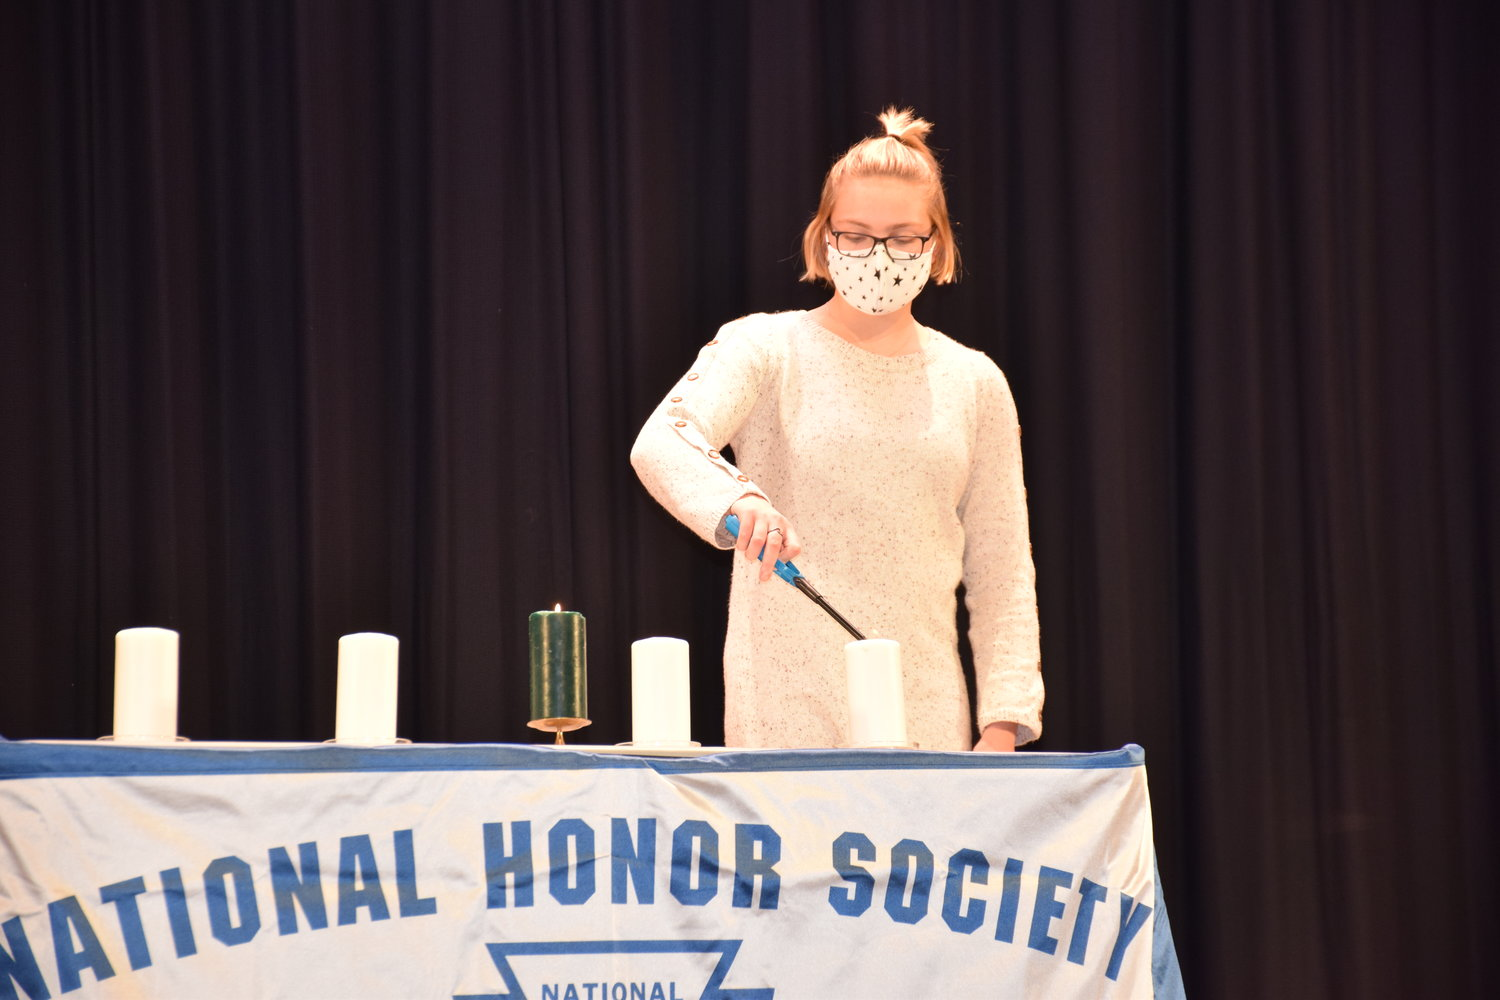 Alexandra Weilert, Locust Valley National Honor Society's secretary, lit a candle, which represented scholarship, during the virtual induction ceremony on Jan. 20.